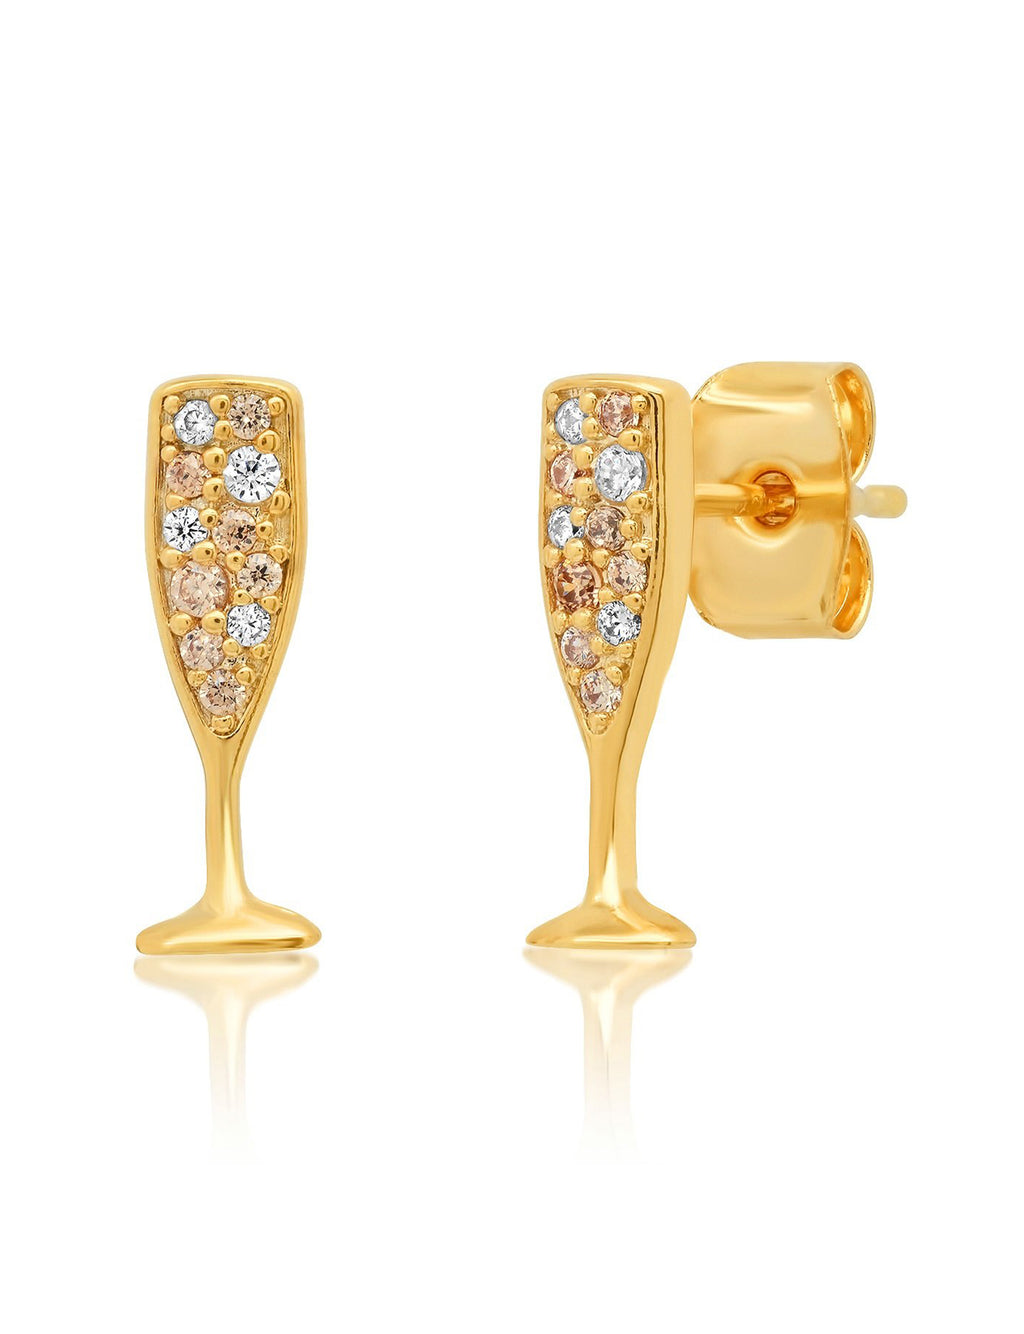 Pave Champagne Glass Studs in Gold